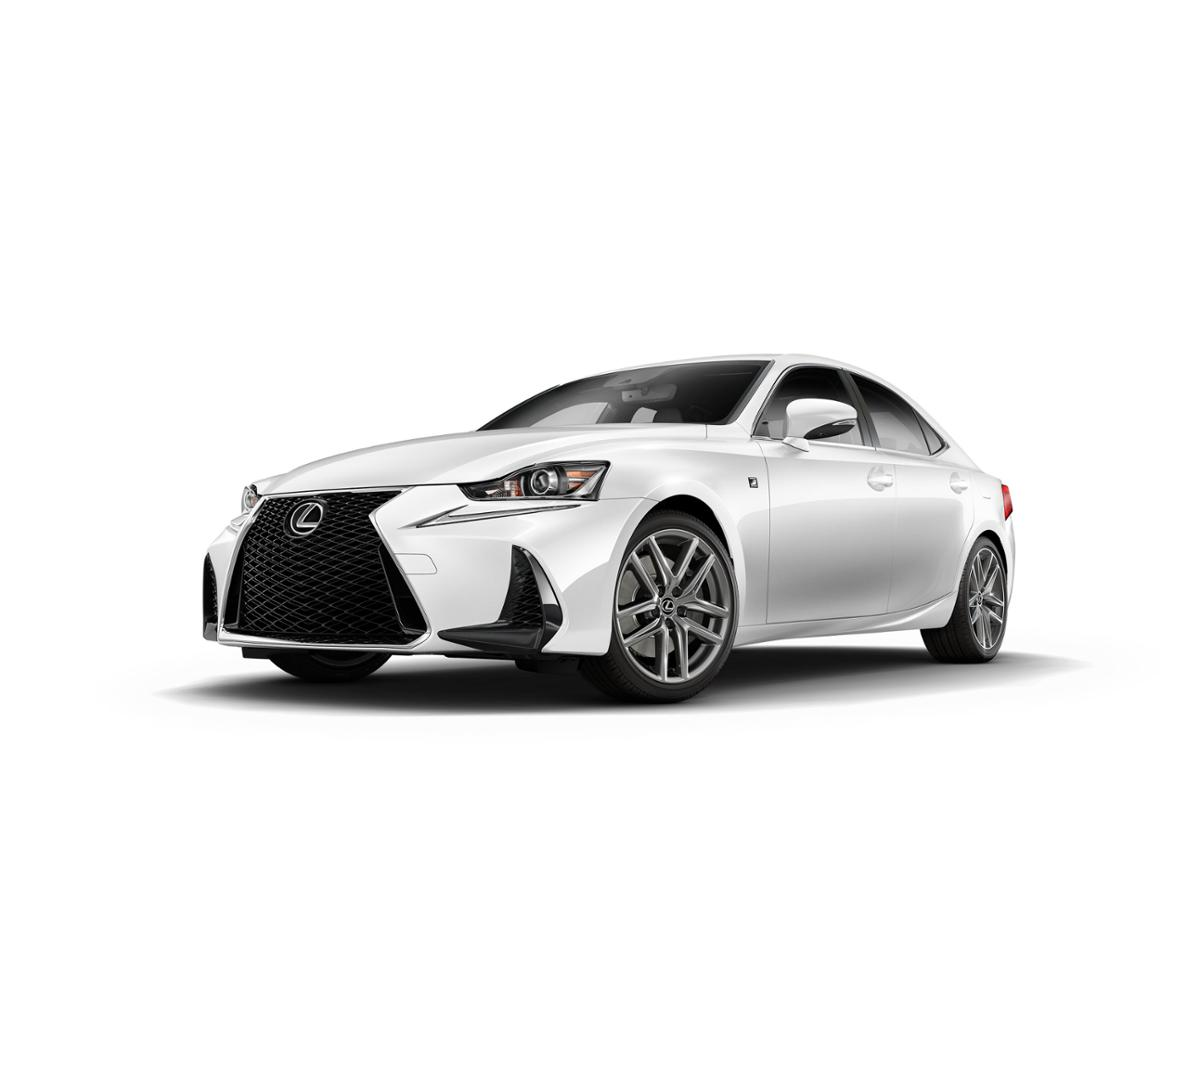 2019 Lexus IS 350 Vehicle Photo in Danvers, MA 01923